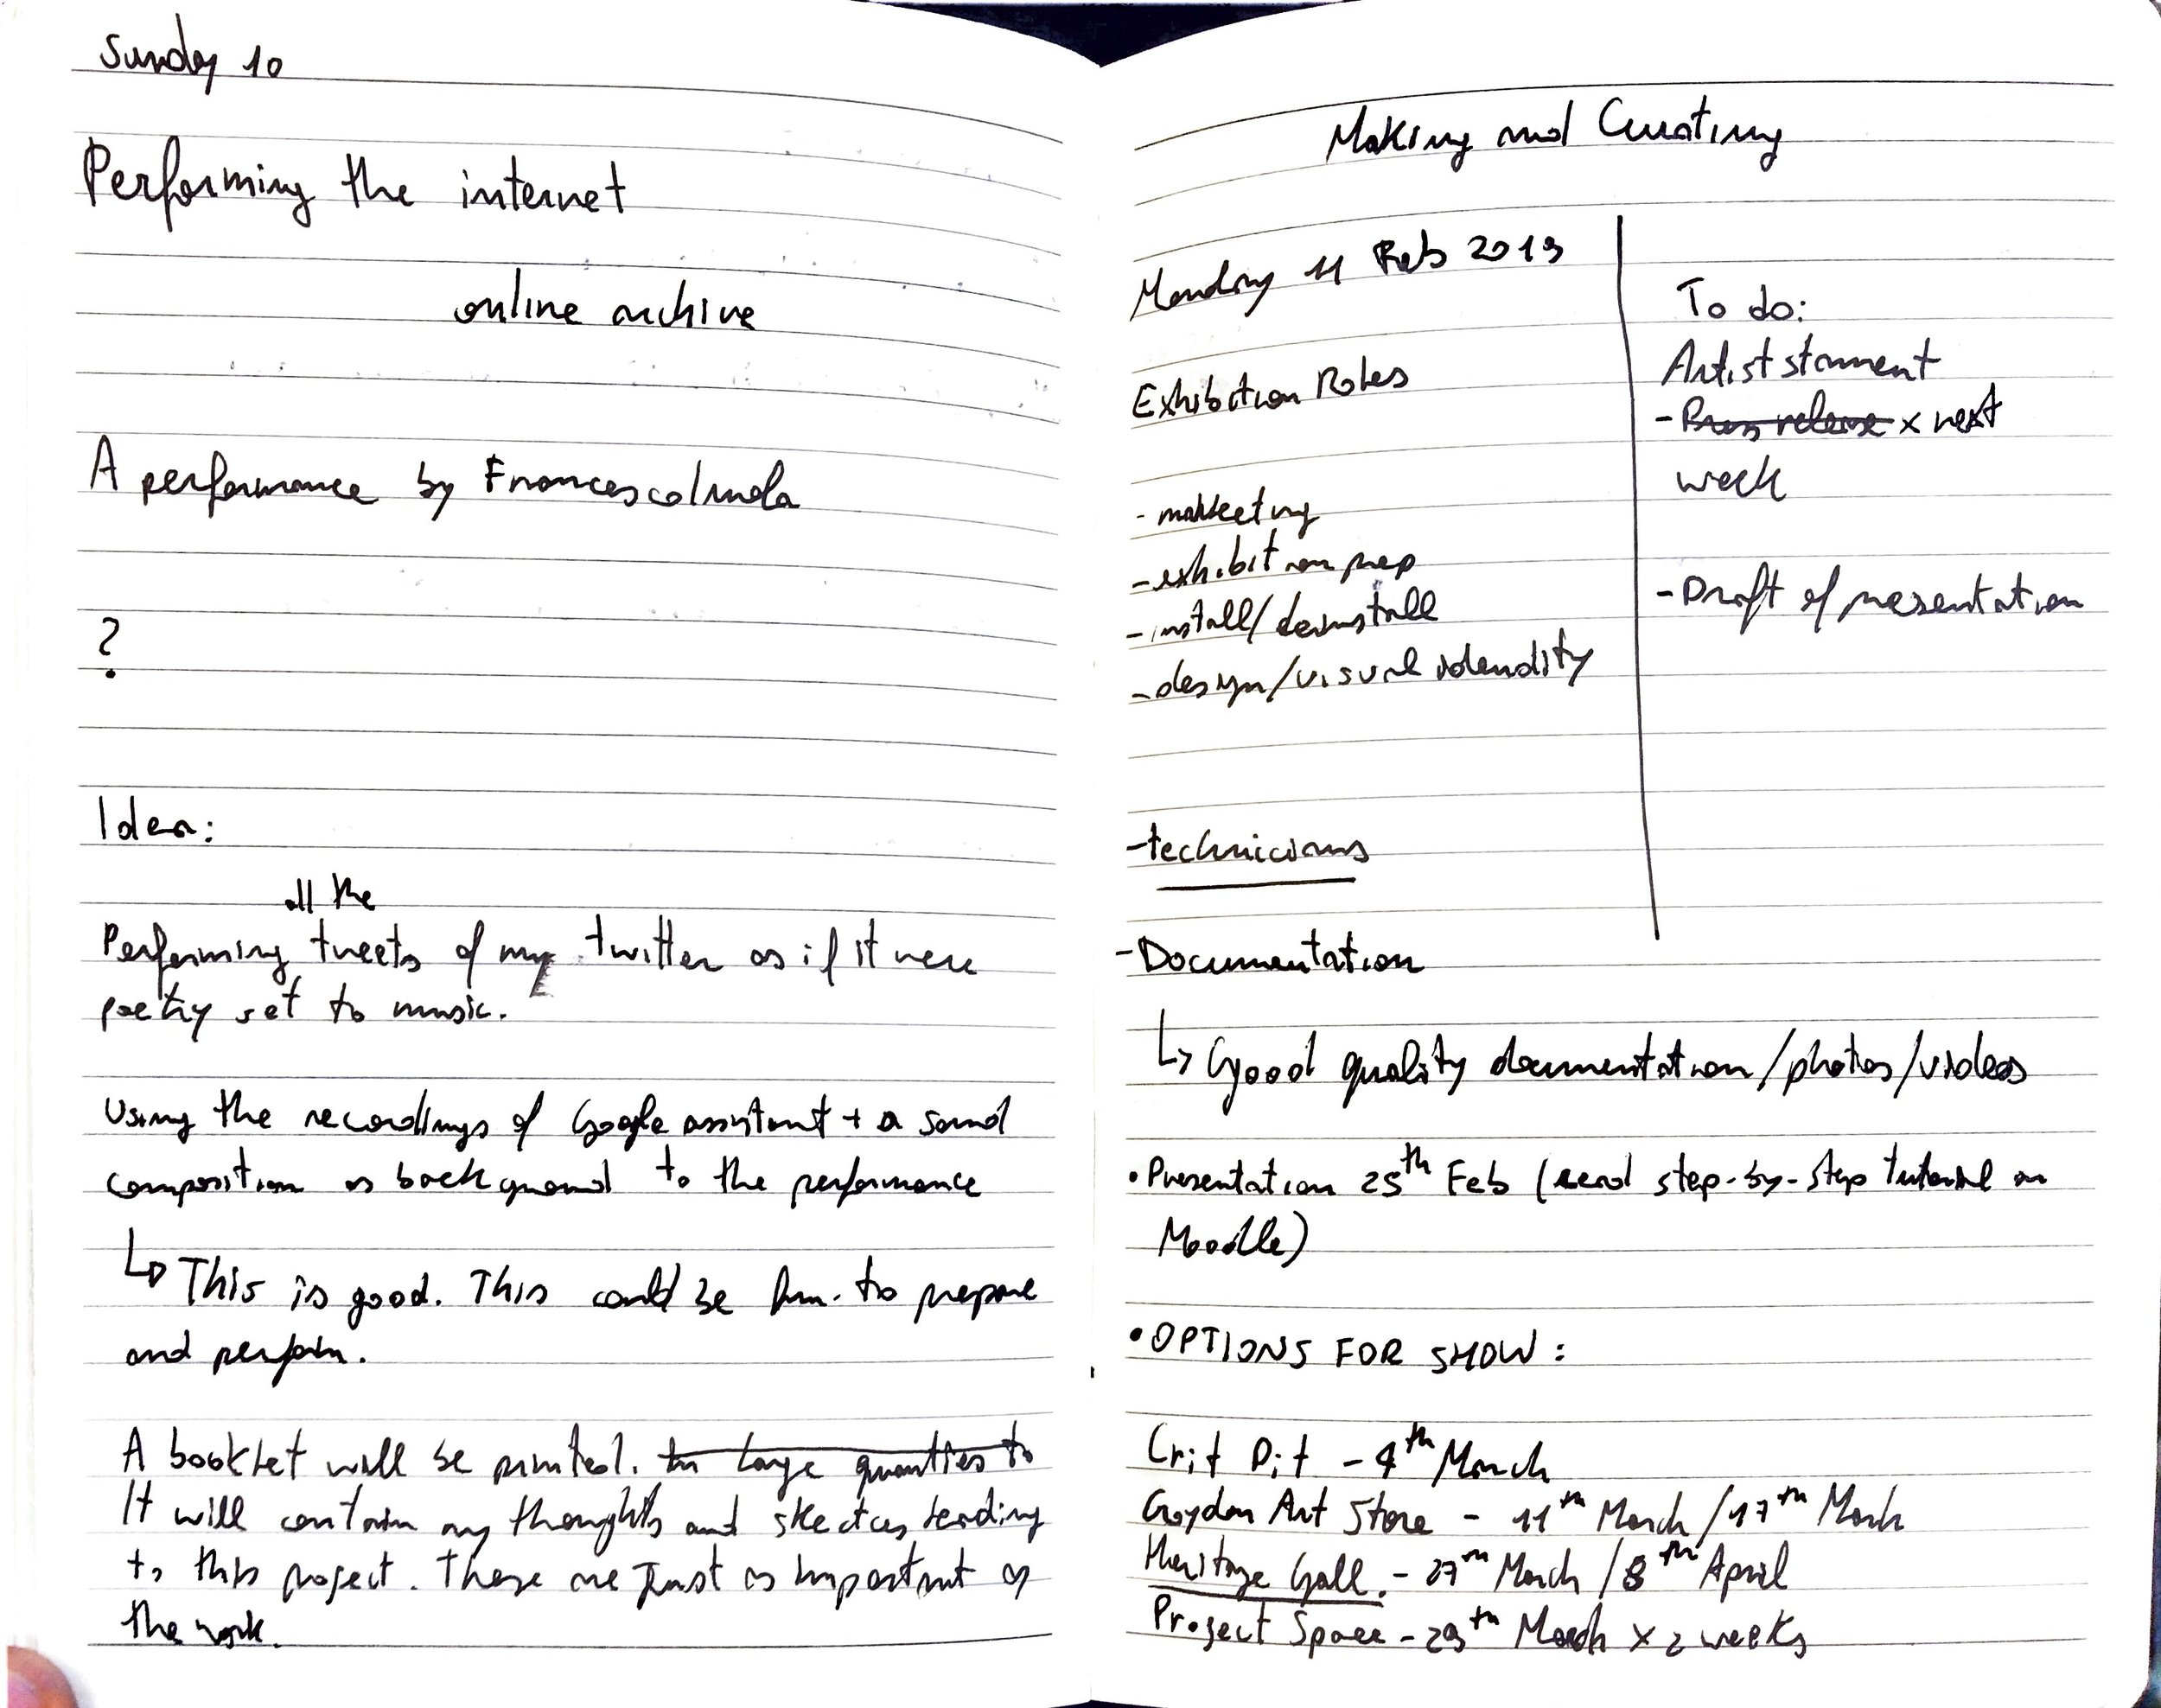 black and pink notebooks_Page_43_Image_0001.jpg